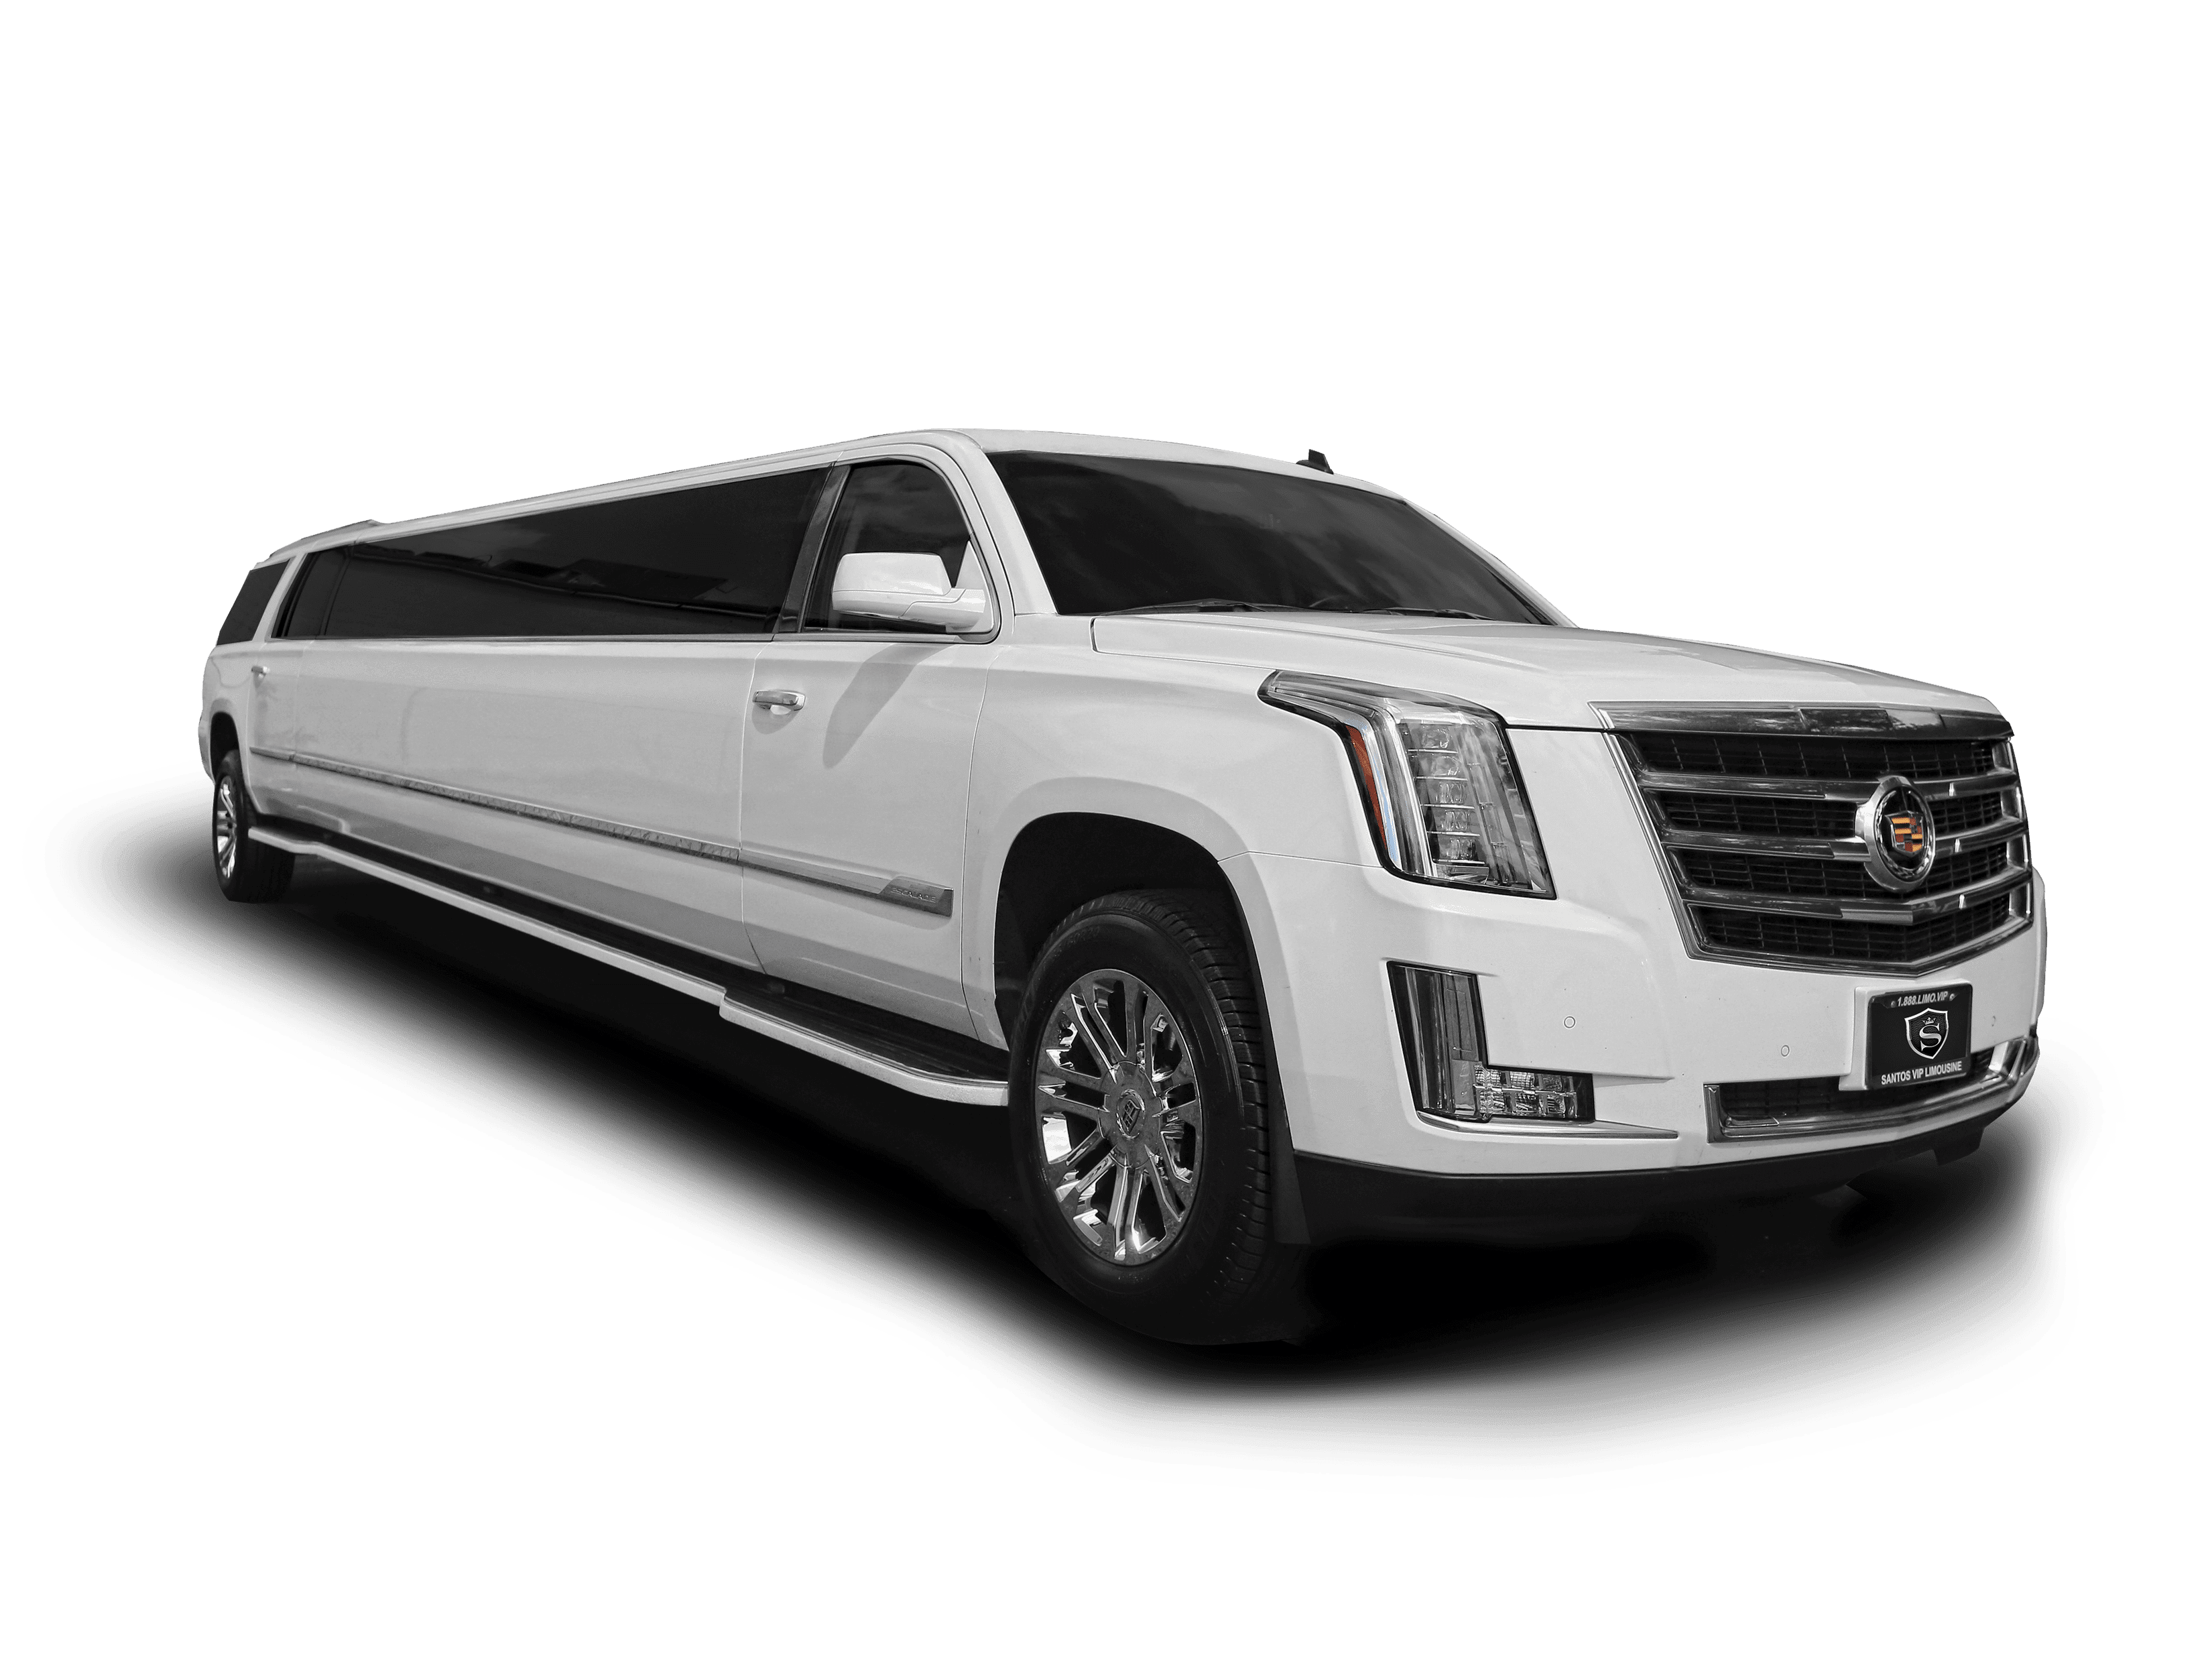 Cadillac Escalade ESV limousine for theater / concert event in NJ - NY